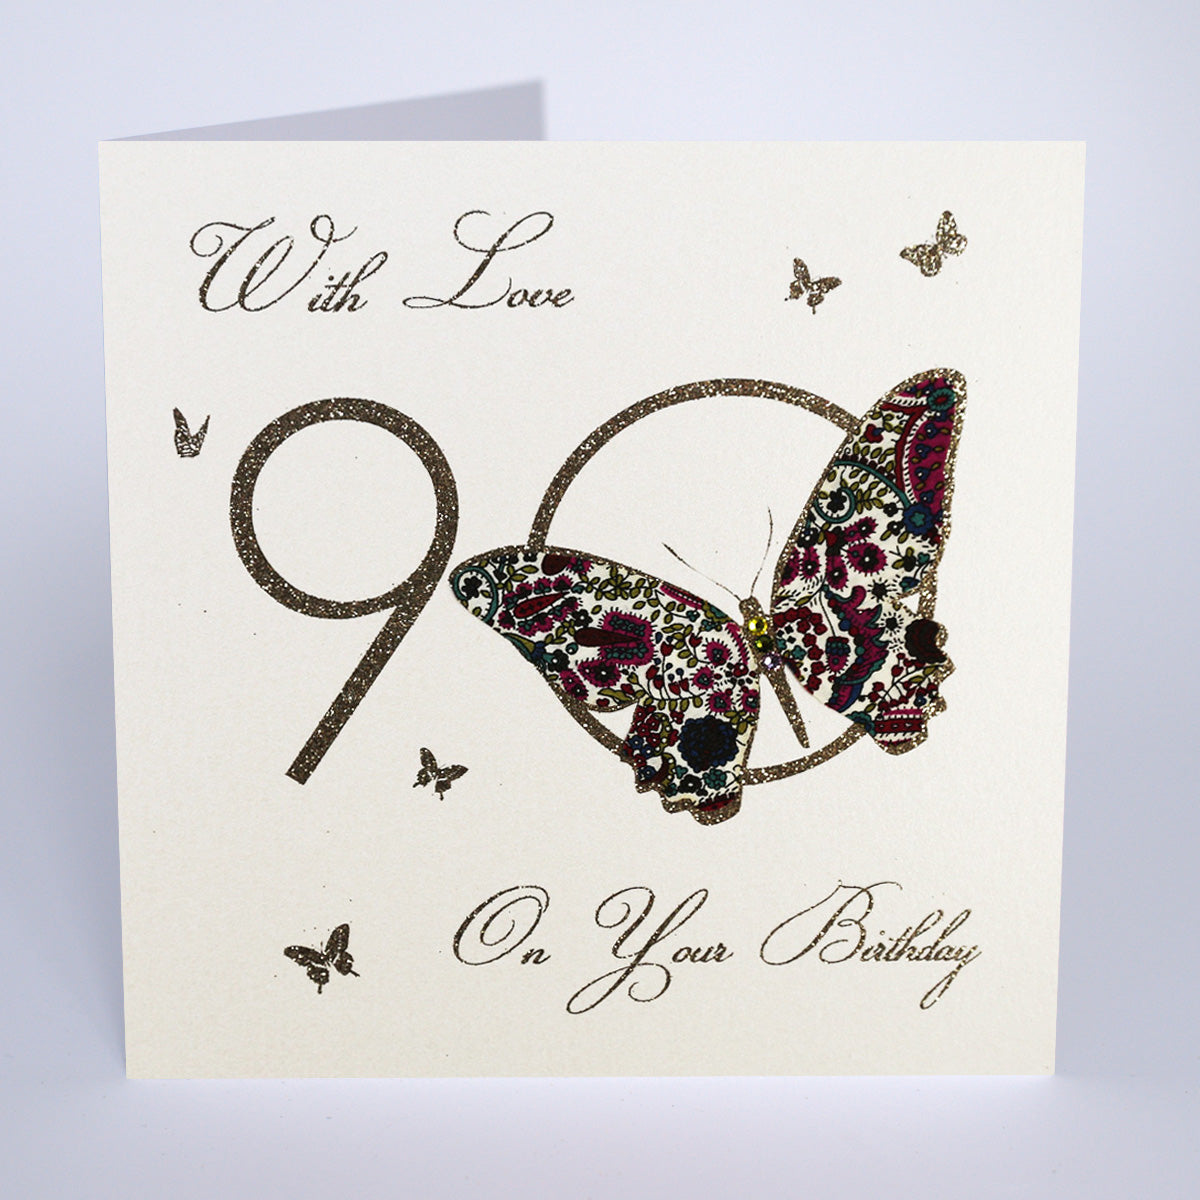 90 With Love on Your Birthday - Butterfly